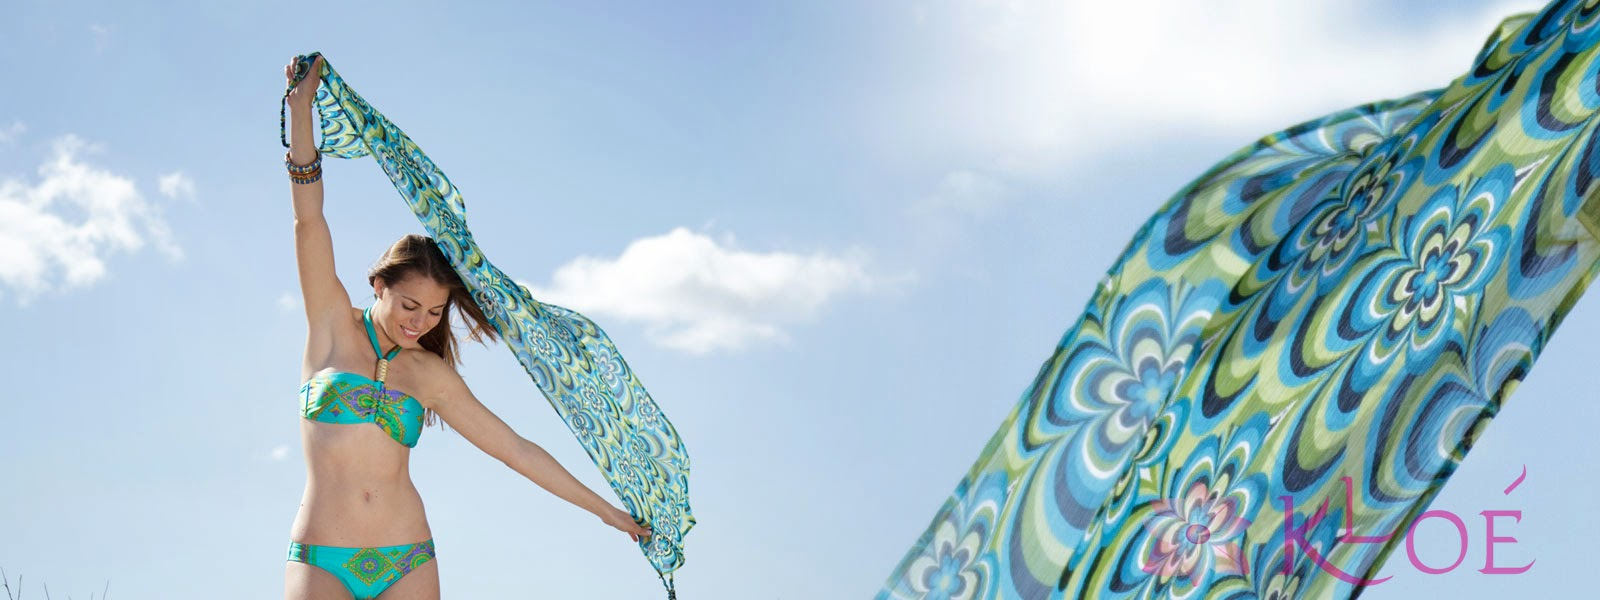 Cool bikinis and chic beachwear collections from Kloé Beach.